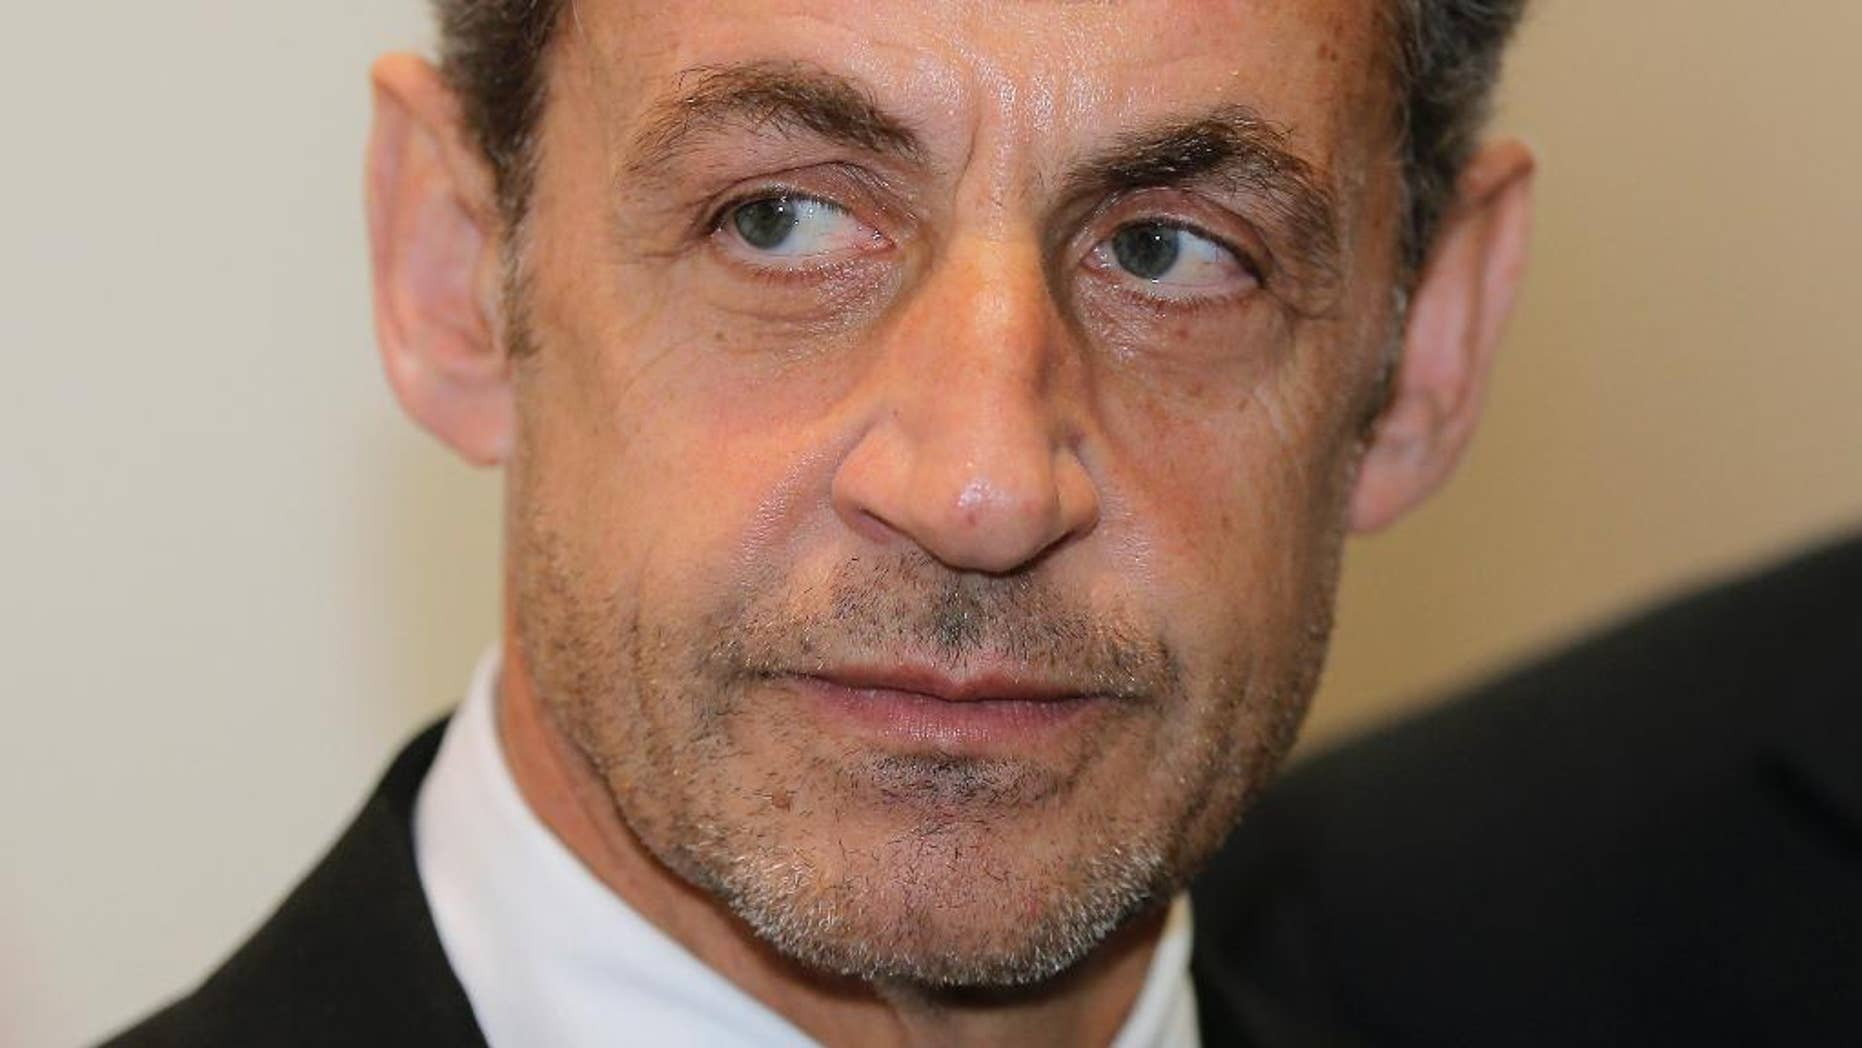 FILE - This Monday, March 10, 2014, file photo shows former French President Nicolas Sarkozy at the Foundation Claude Pompidou, in Nice, French Riviera. Former French President Nicolas Sarkozy has been detained and is reportedly being questioned by financial investigators in a corruption probe that is rattling France's conservative political establishment. (AP Photo/Lionel Cironneau, File)